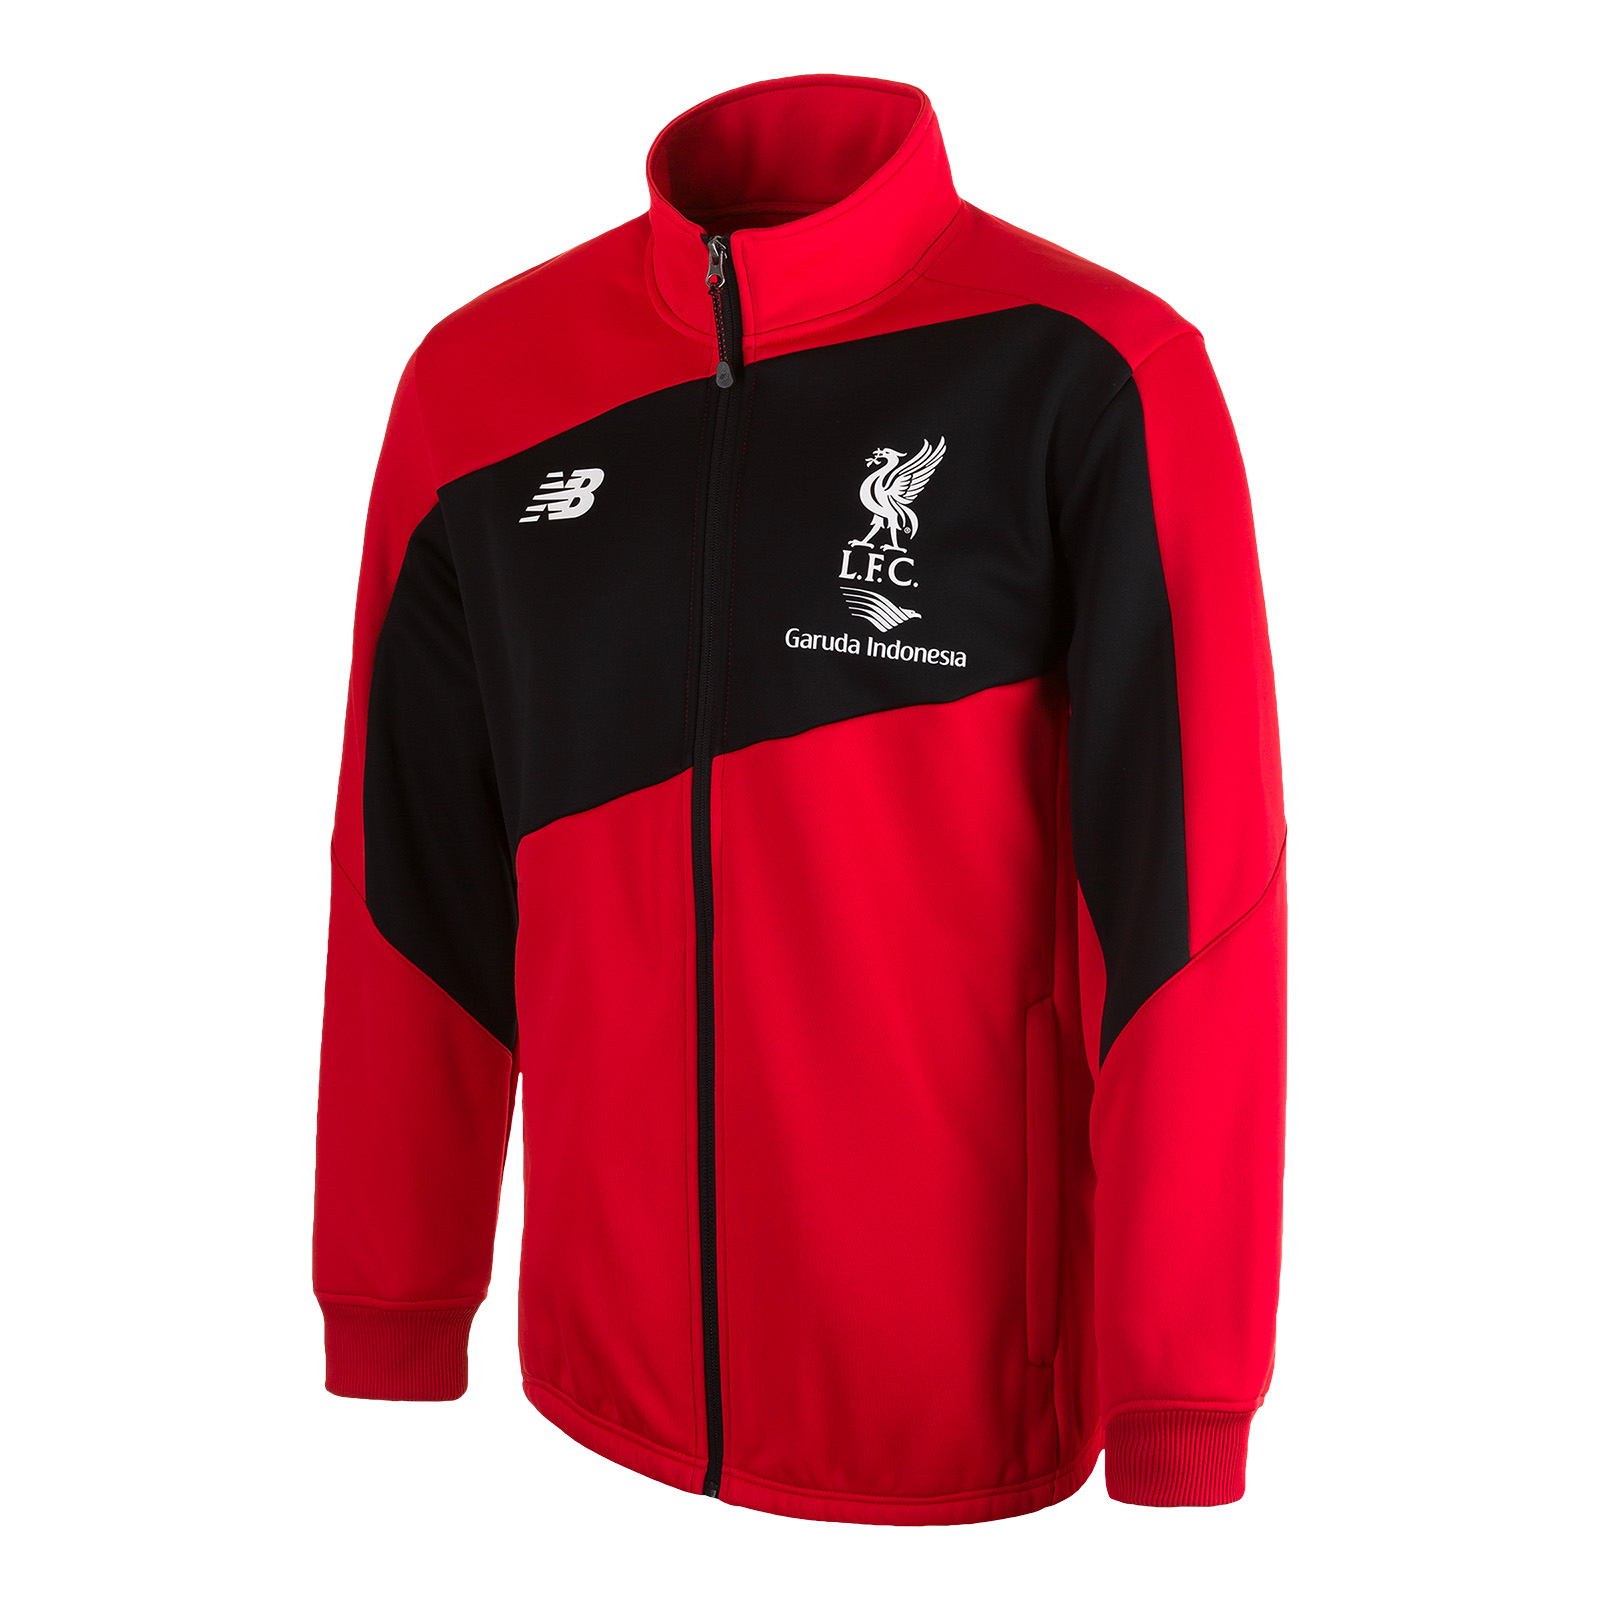 cheaper 3adc7 64a55 NB Liverpool Training Walkout Jacket 2015/16 - Red